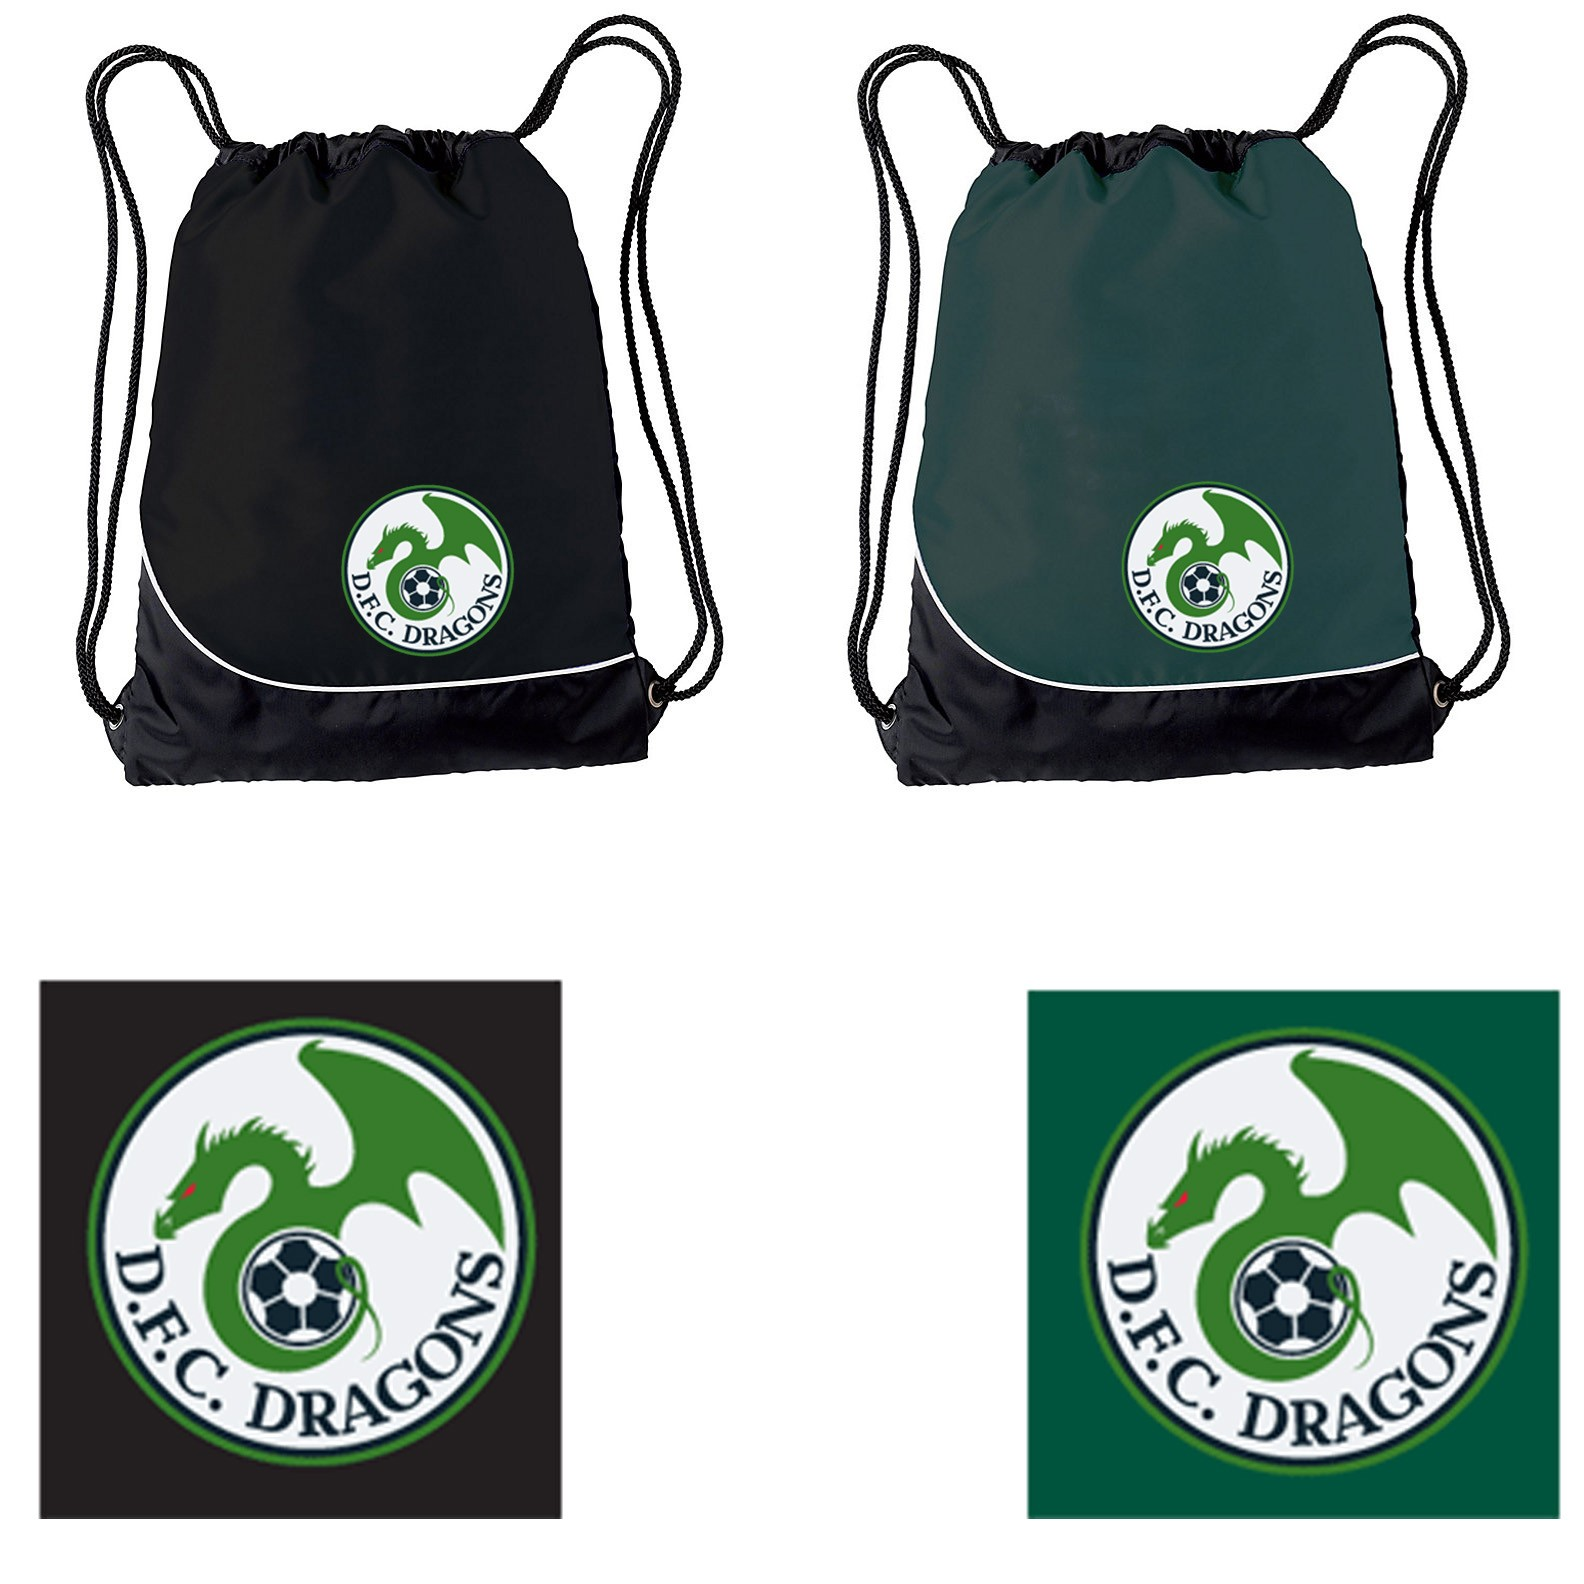 Duxbury Youth Soccer DFC Holloway Day-Pak Bag #229409